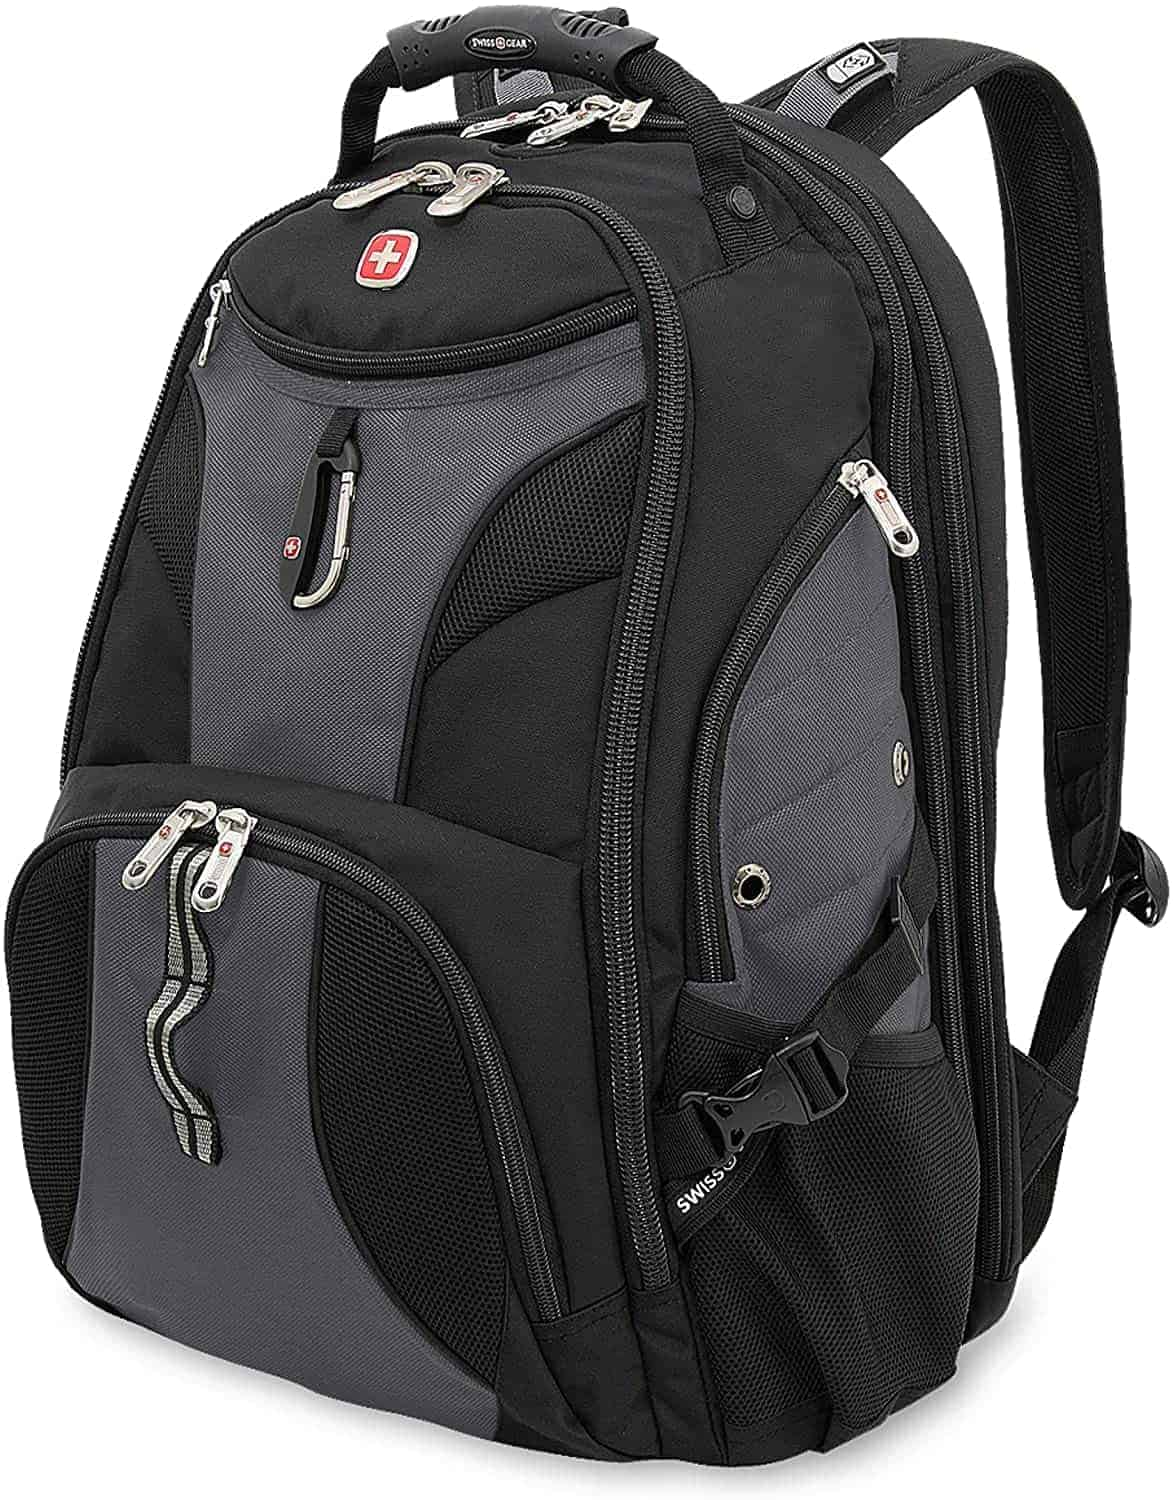 Top Ten Best Backpack Brands in 2021